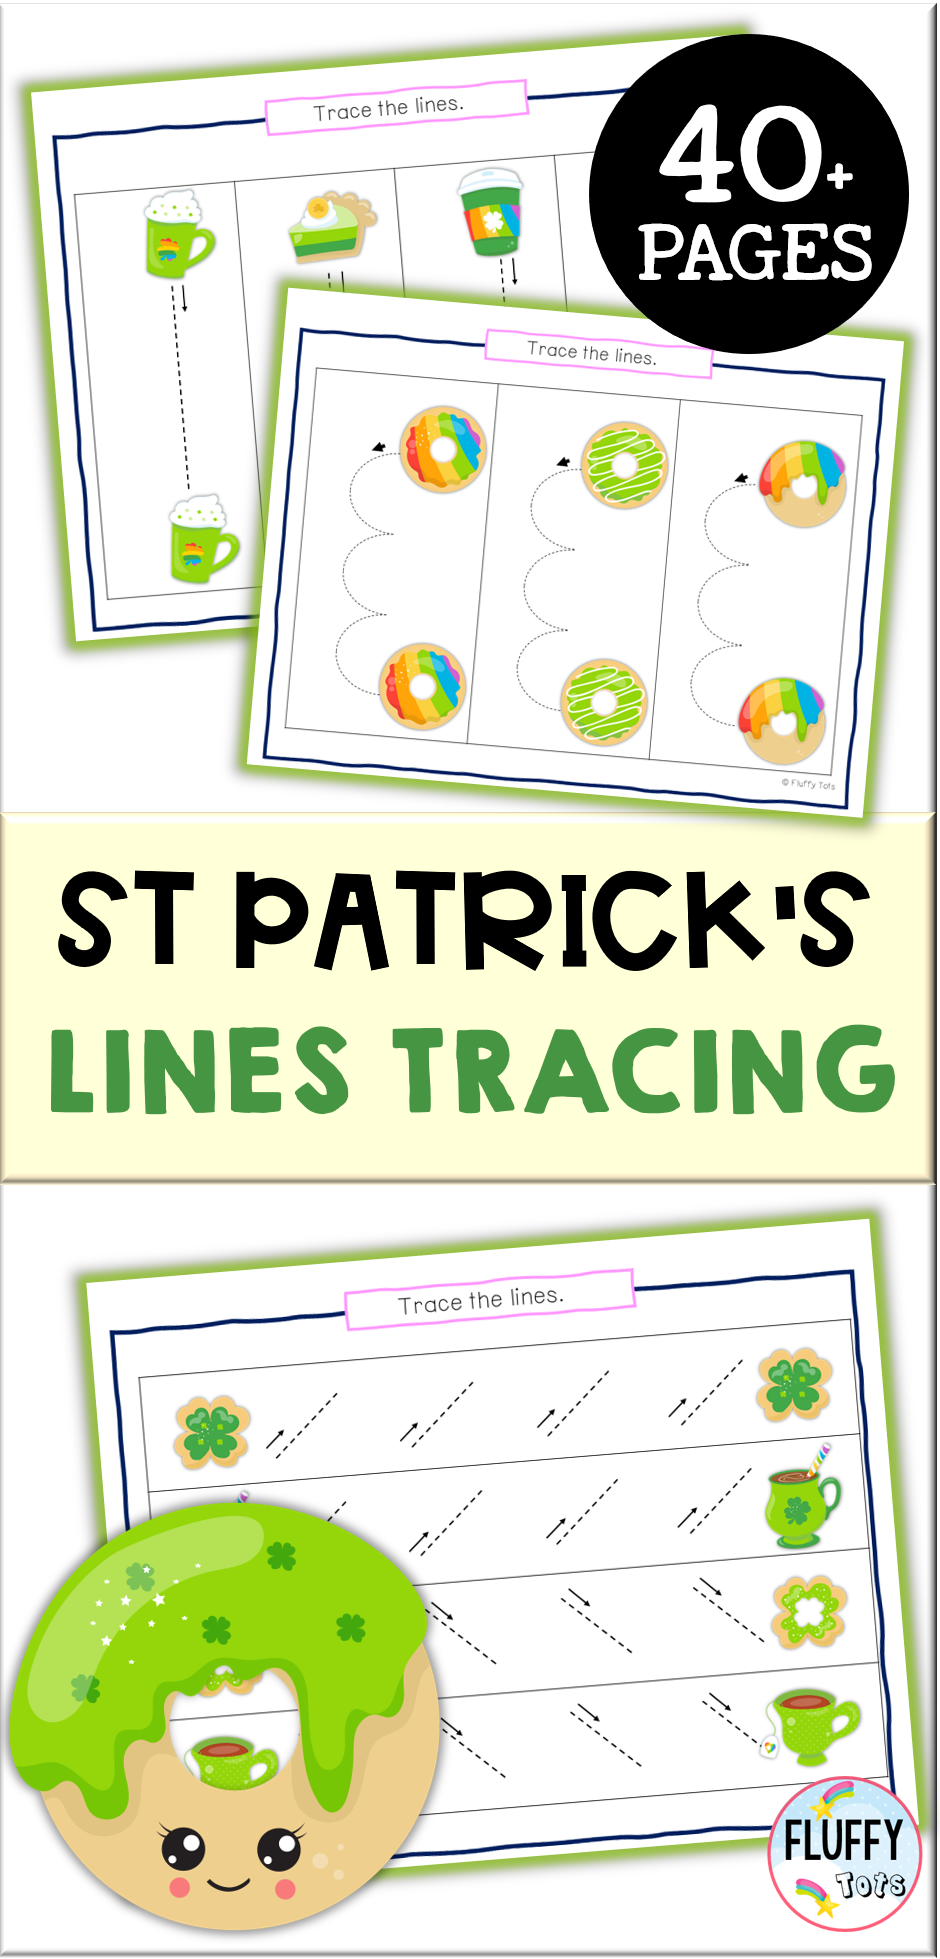 St Patrick S Day Pre Writing Tracing For Preschool St Patrick S Treats Pre Writing Preschool Tracing St Patrick Day Activities [ 1959 x 940 Pixel ]